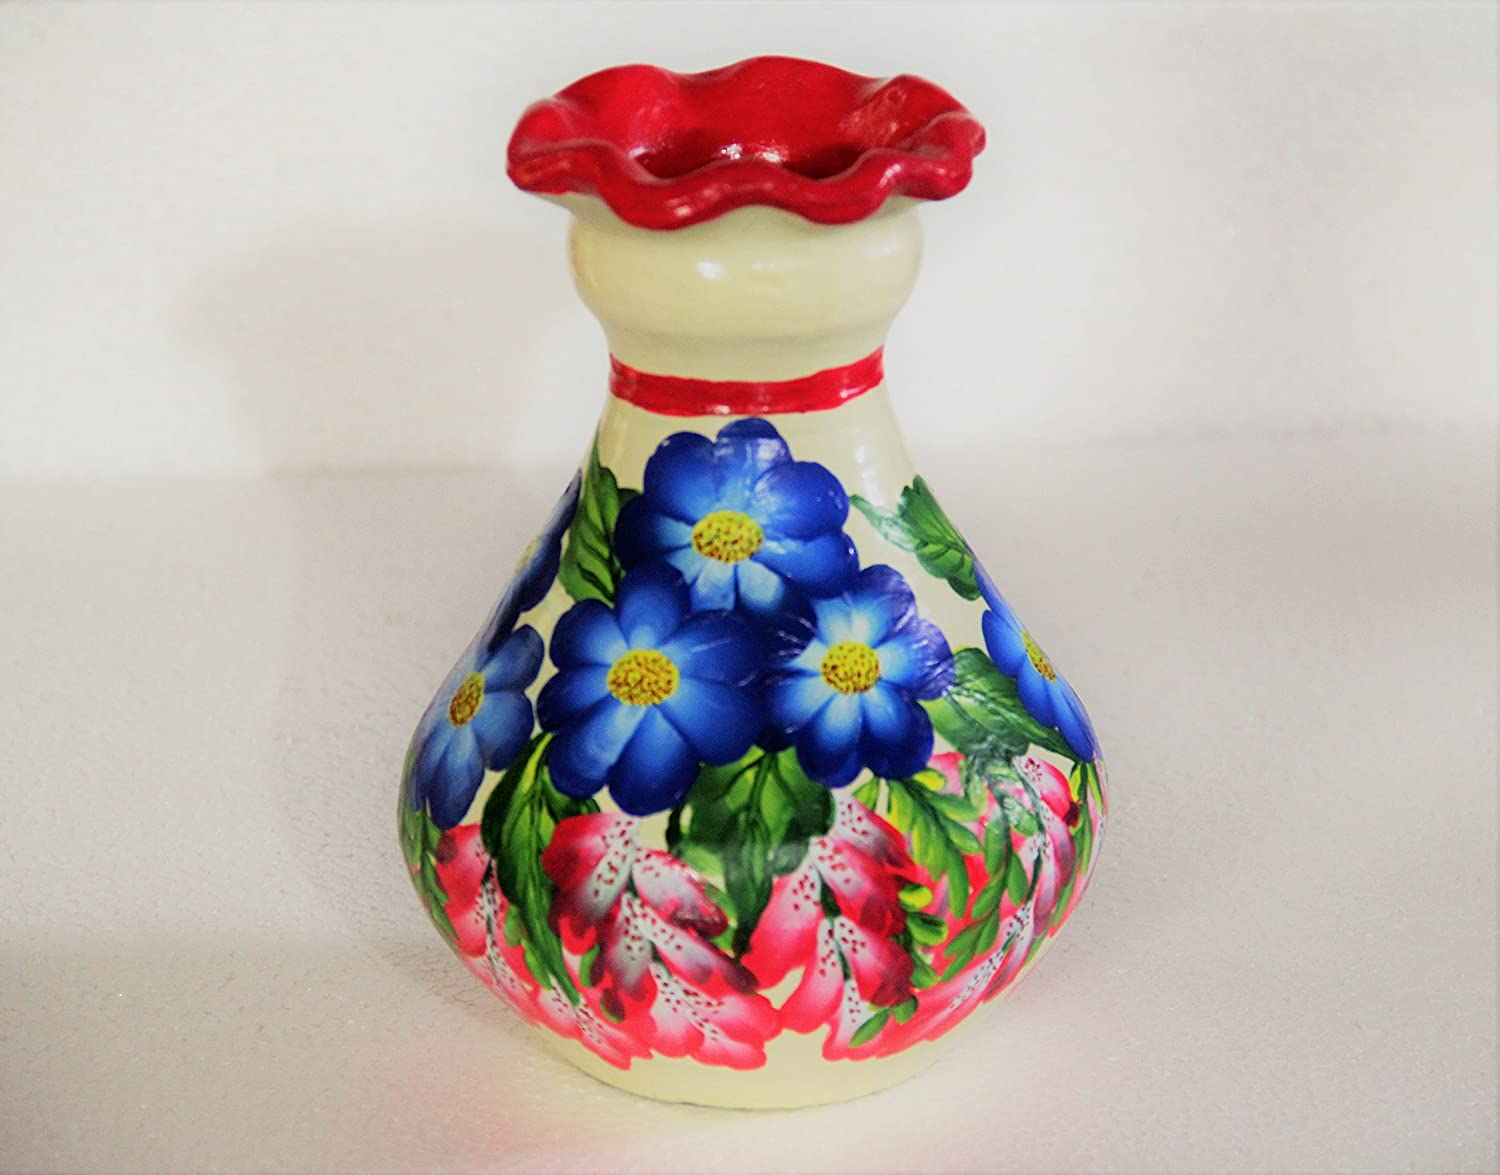 Buy Pots Paintings 7 Inches Home Decorative Flower Vase Handmade Terracotta Flower Pot Clay Pot Living Room Showpiece Gifting Item Online At Low Prices In India Amazon In